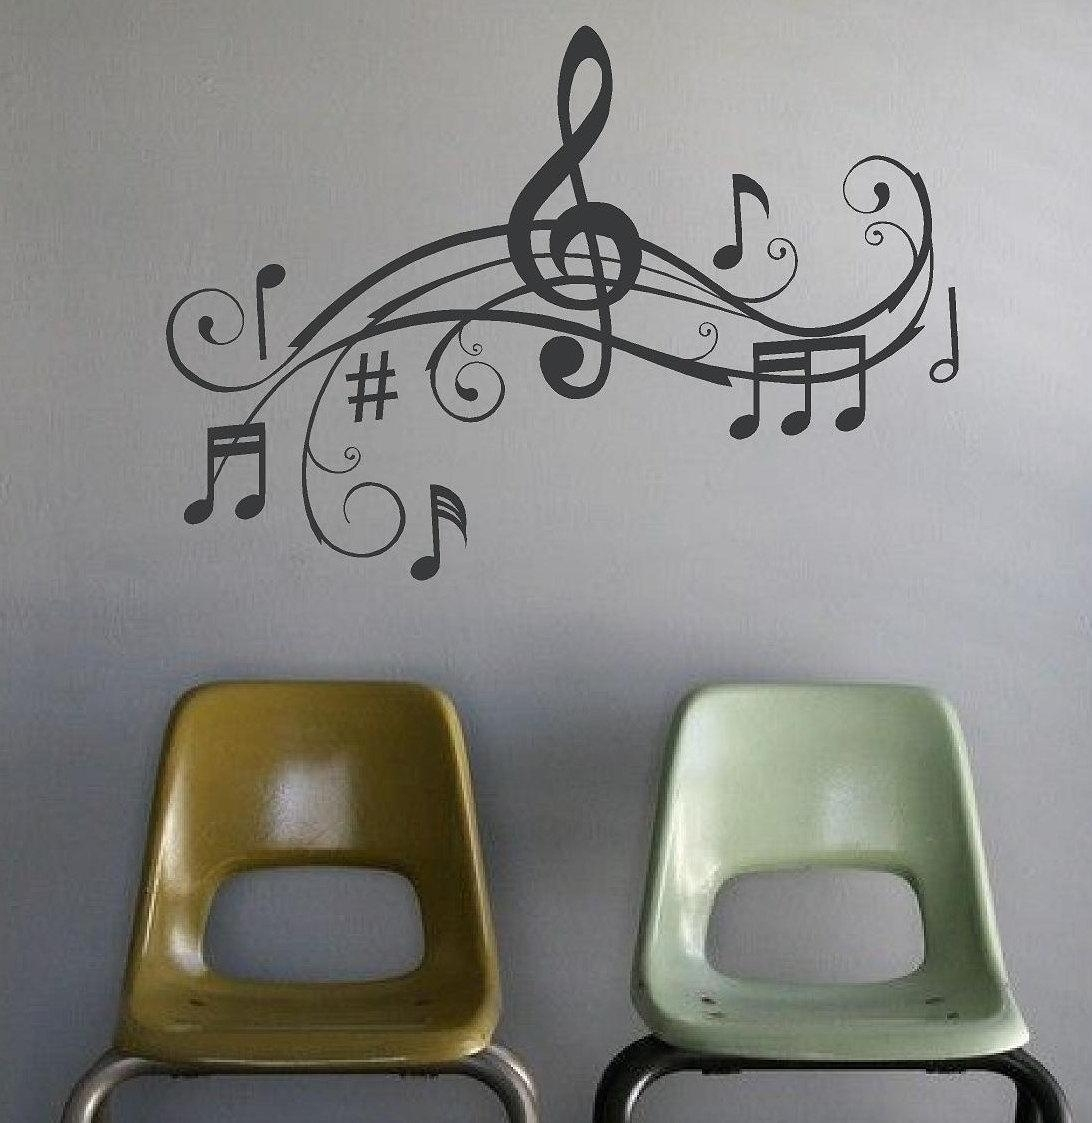 Music Notes Wall Art Words Vinyl Lettering Stickers Inside Music Notes Wall Art Decals (Image 10 of 20)